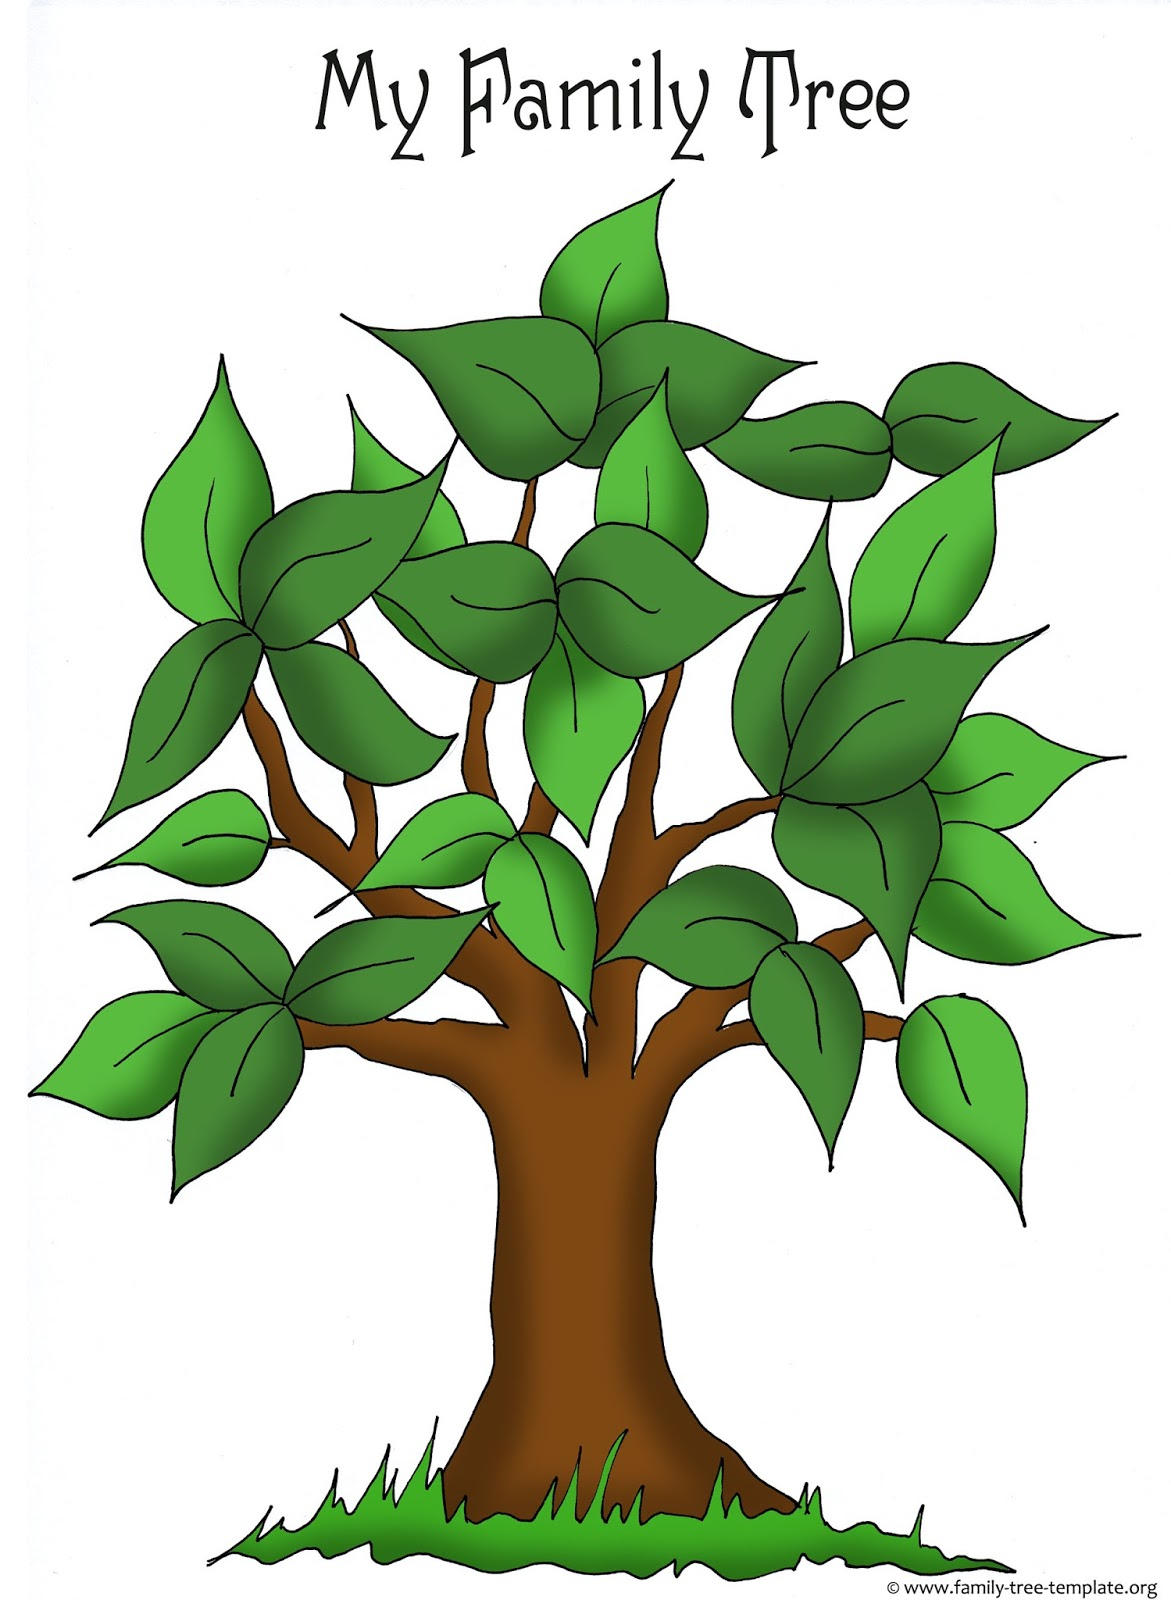 Adaptable image intended for printable tree template